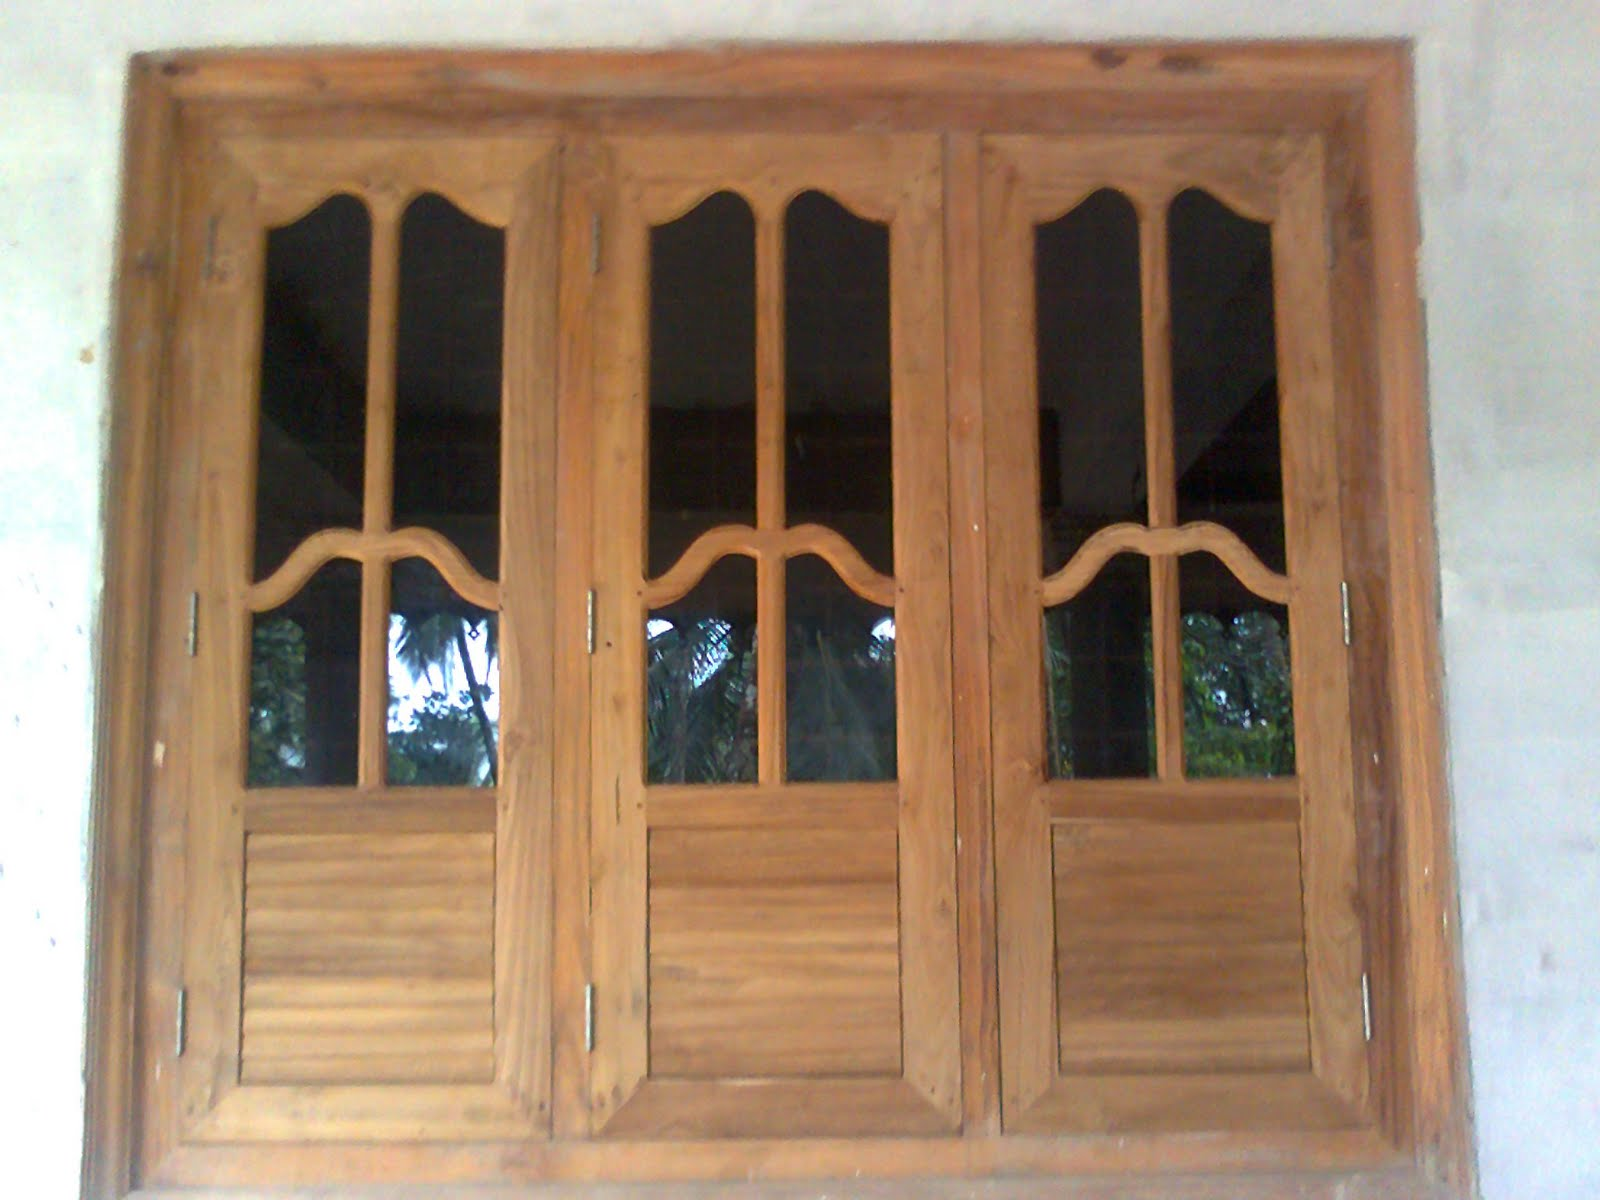 Bavas wood works wooden window doors simple designs for Door and window design